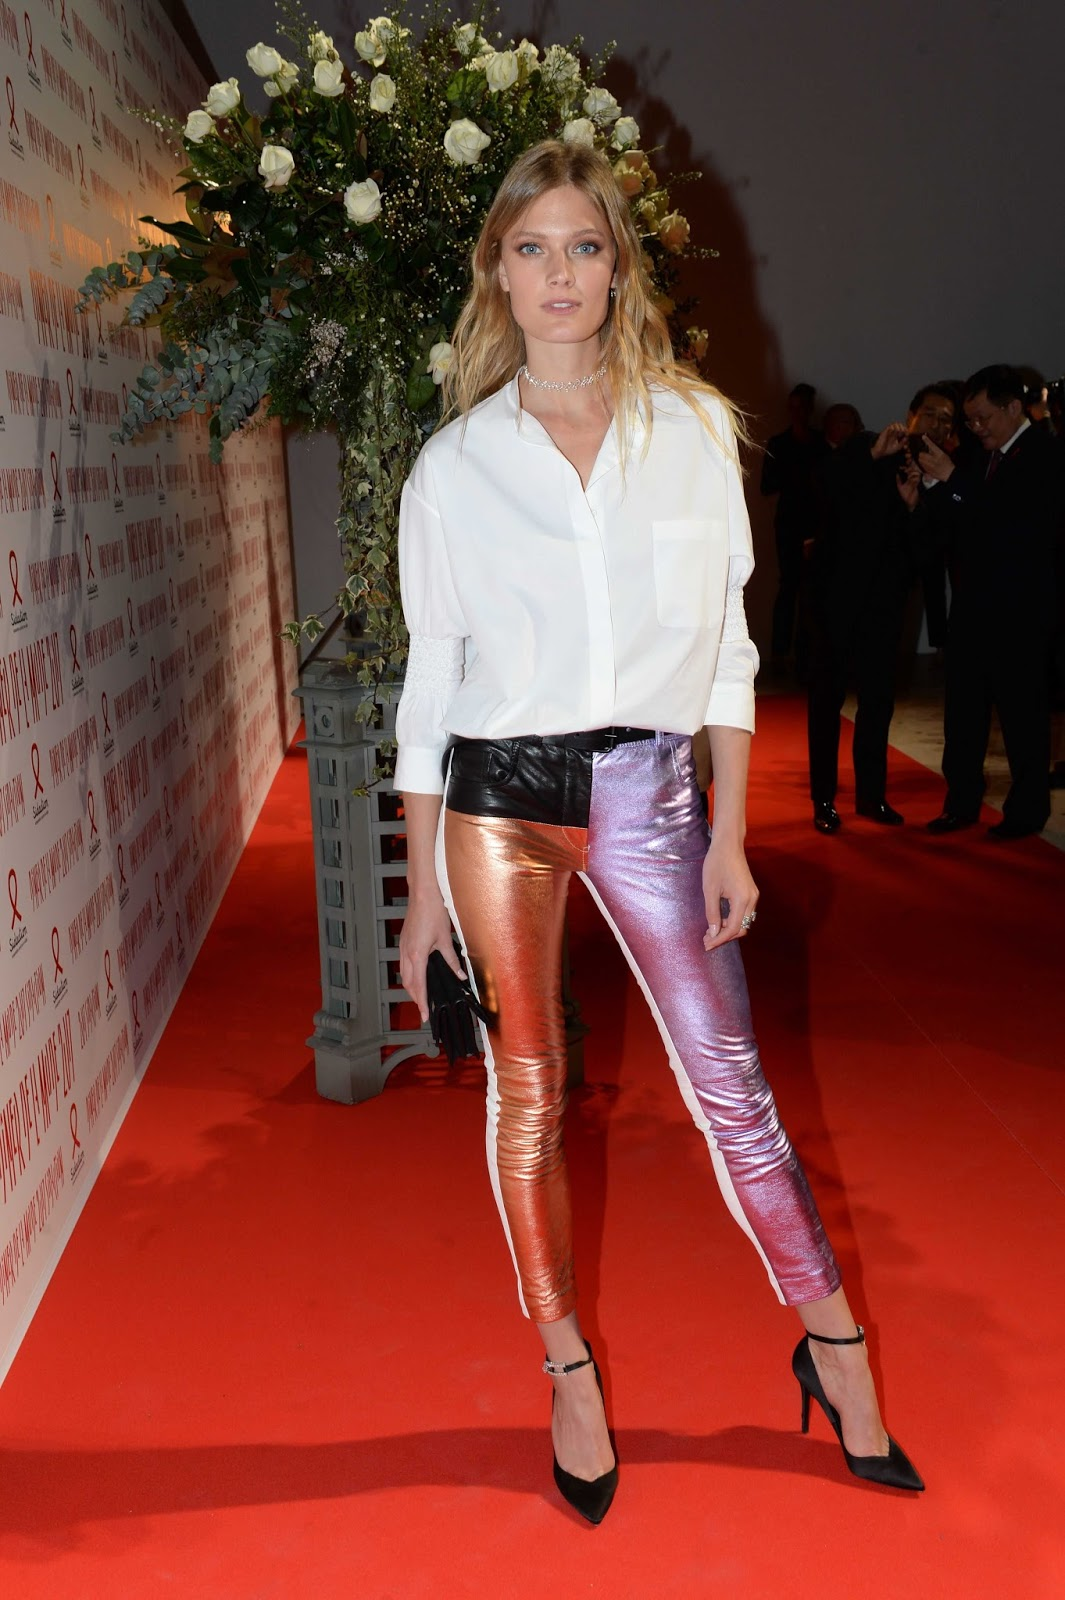 leather pants marie pics Constance